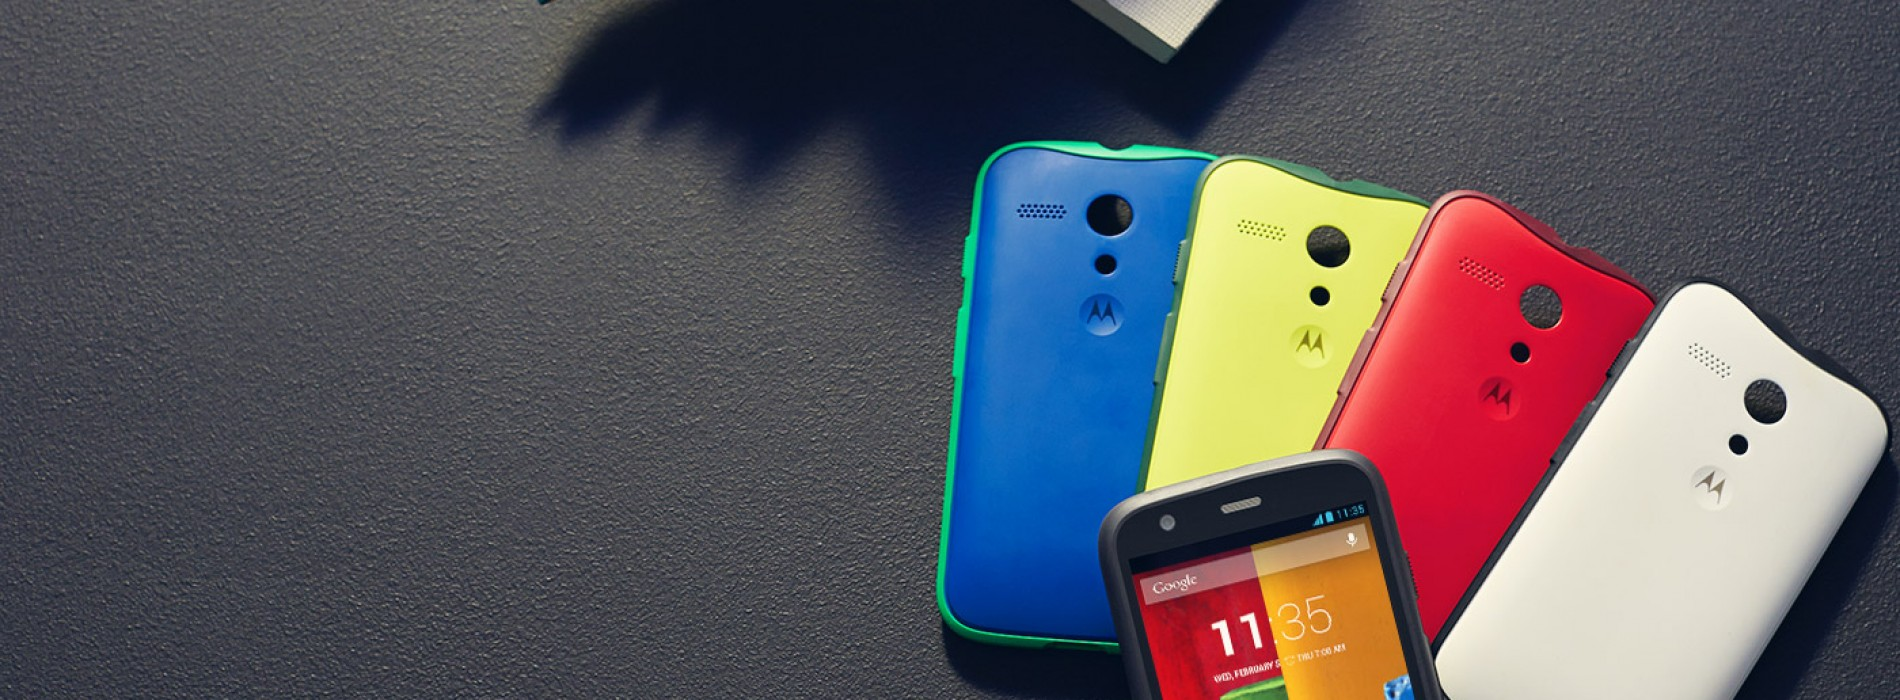 Moto G arrives in U.S. ahead of schedule;